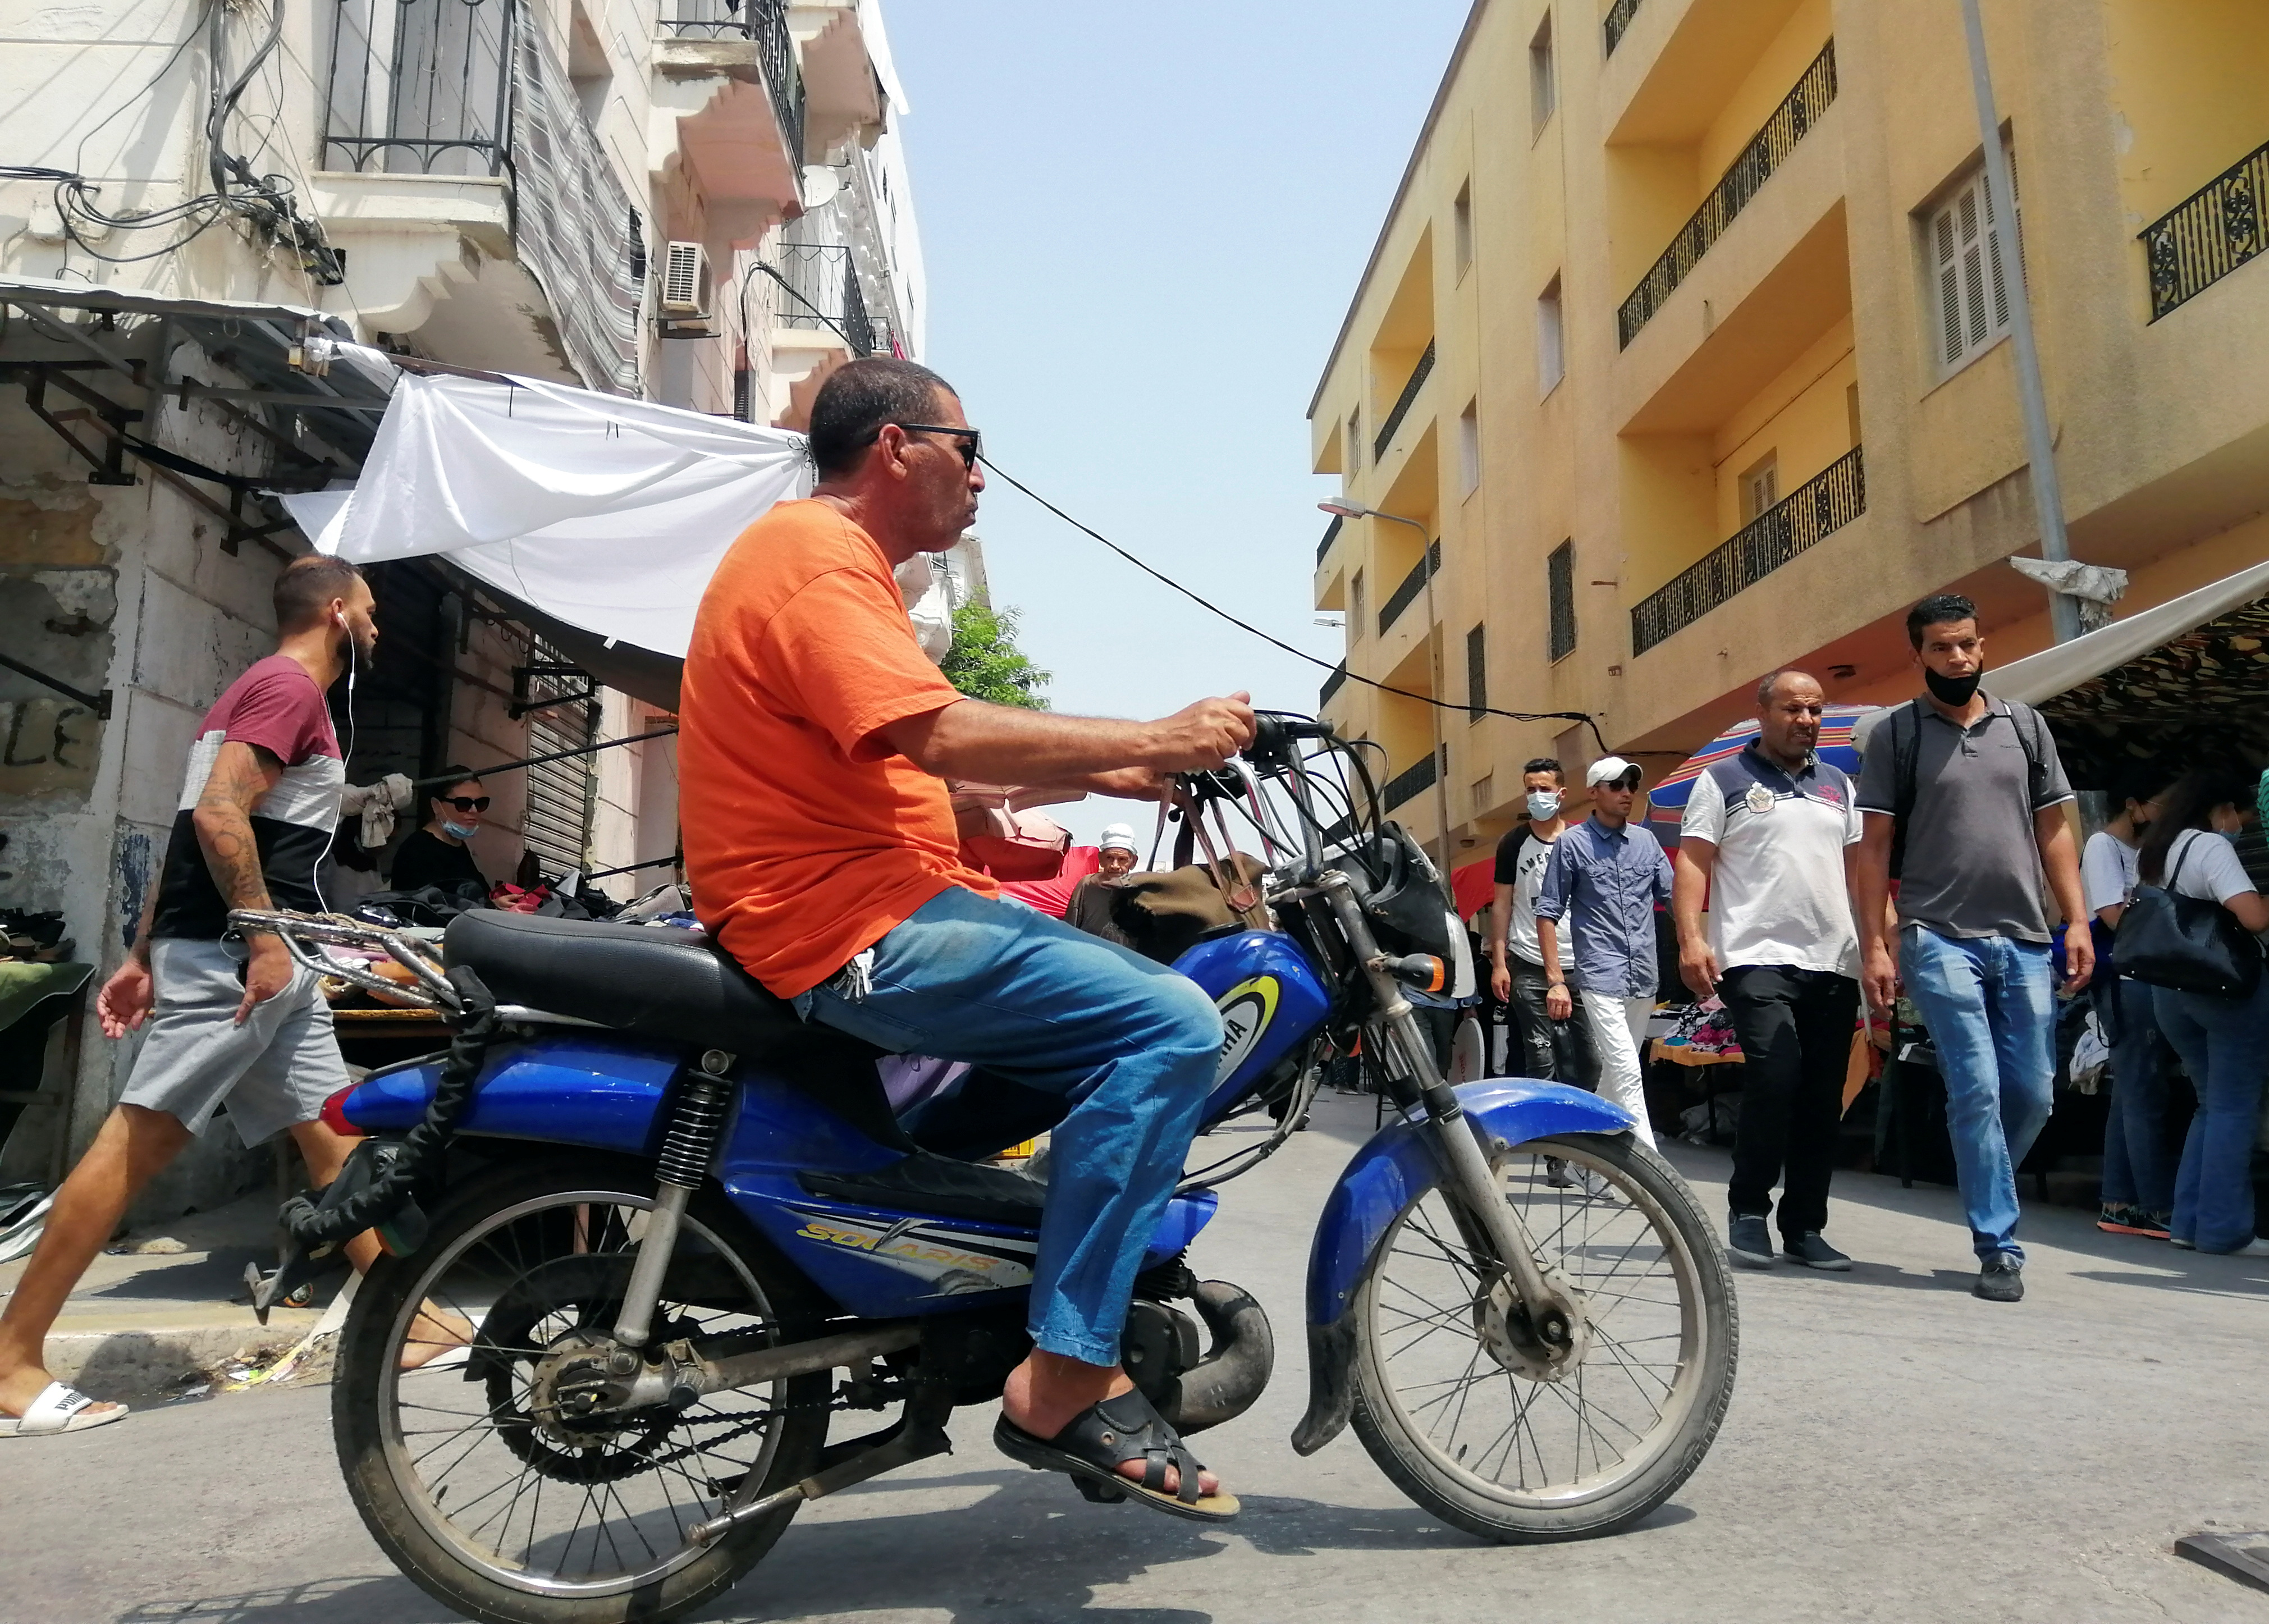 A man rides a motorbike in Tunis, Tunisia August 12, 2021.  REUTERS/Jihed Abidellaoui